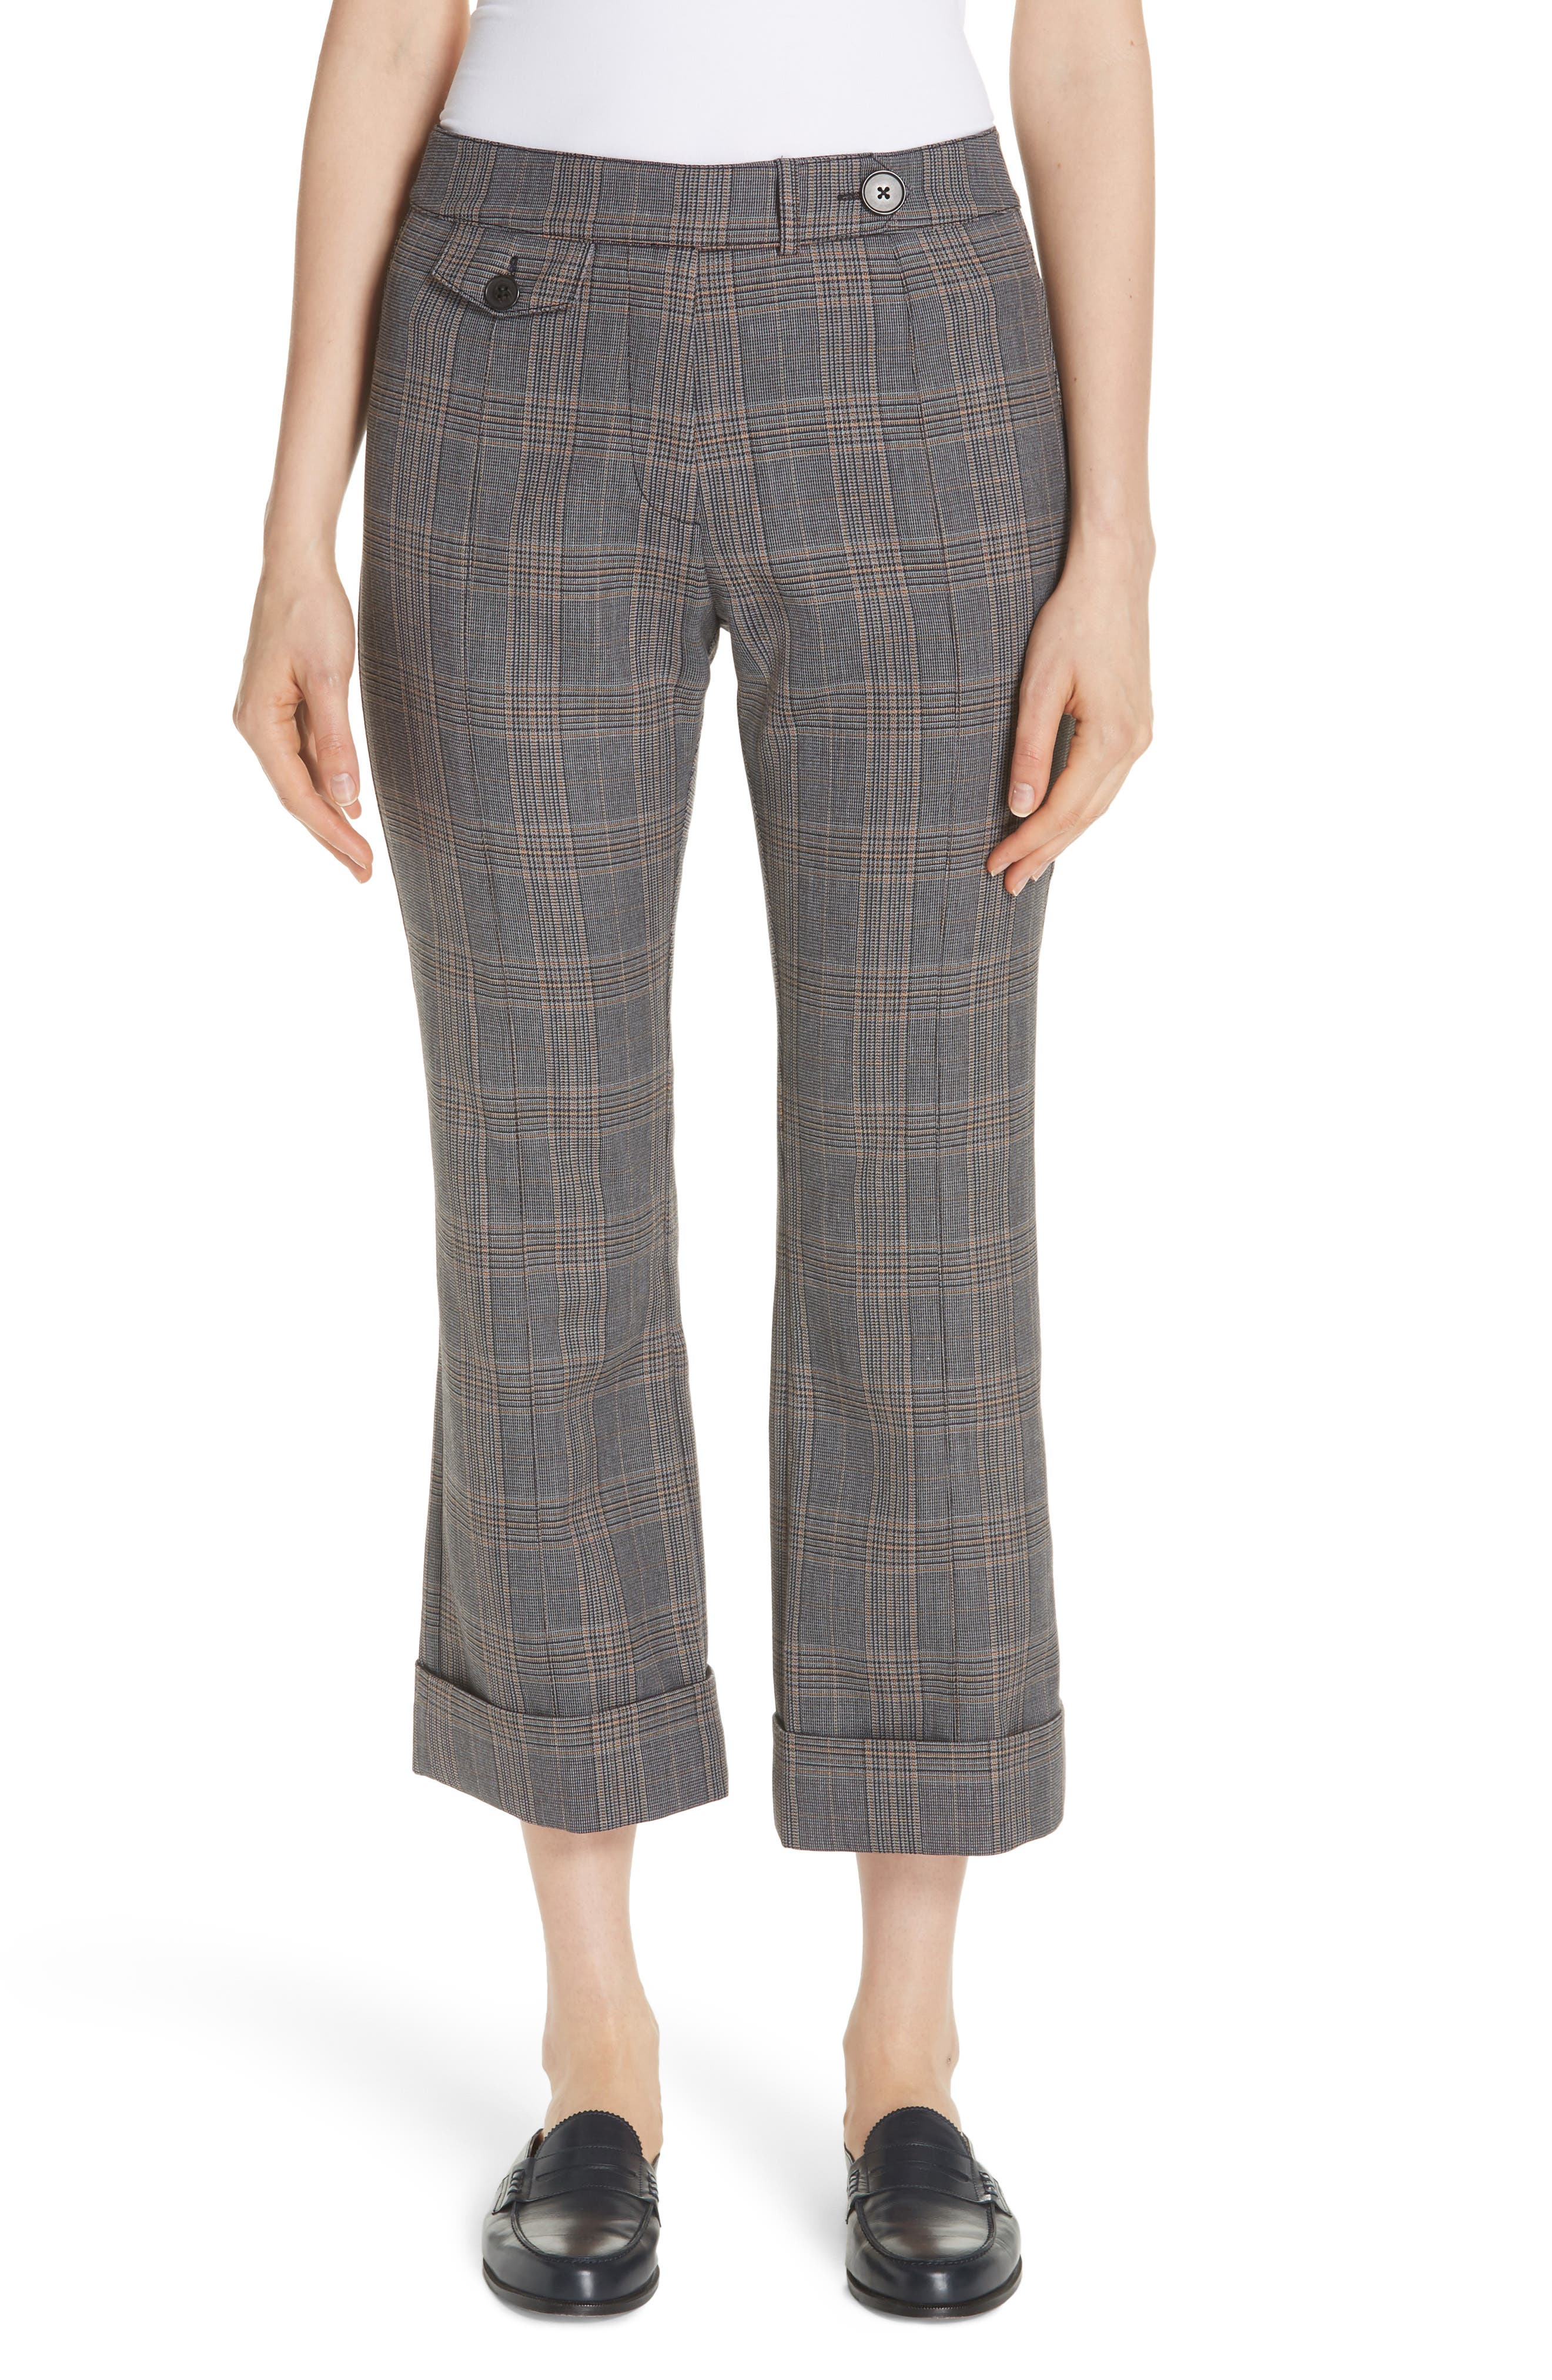 Derek Lam 10 Crosby Plaid Crop Flare Pants, Grey